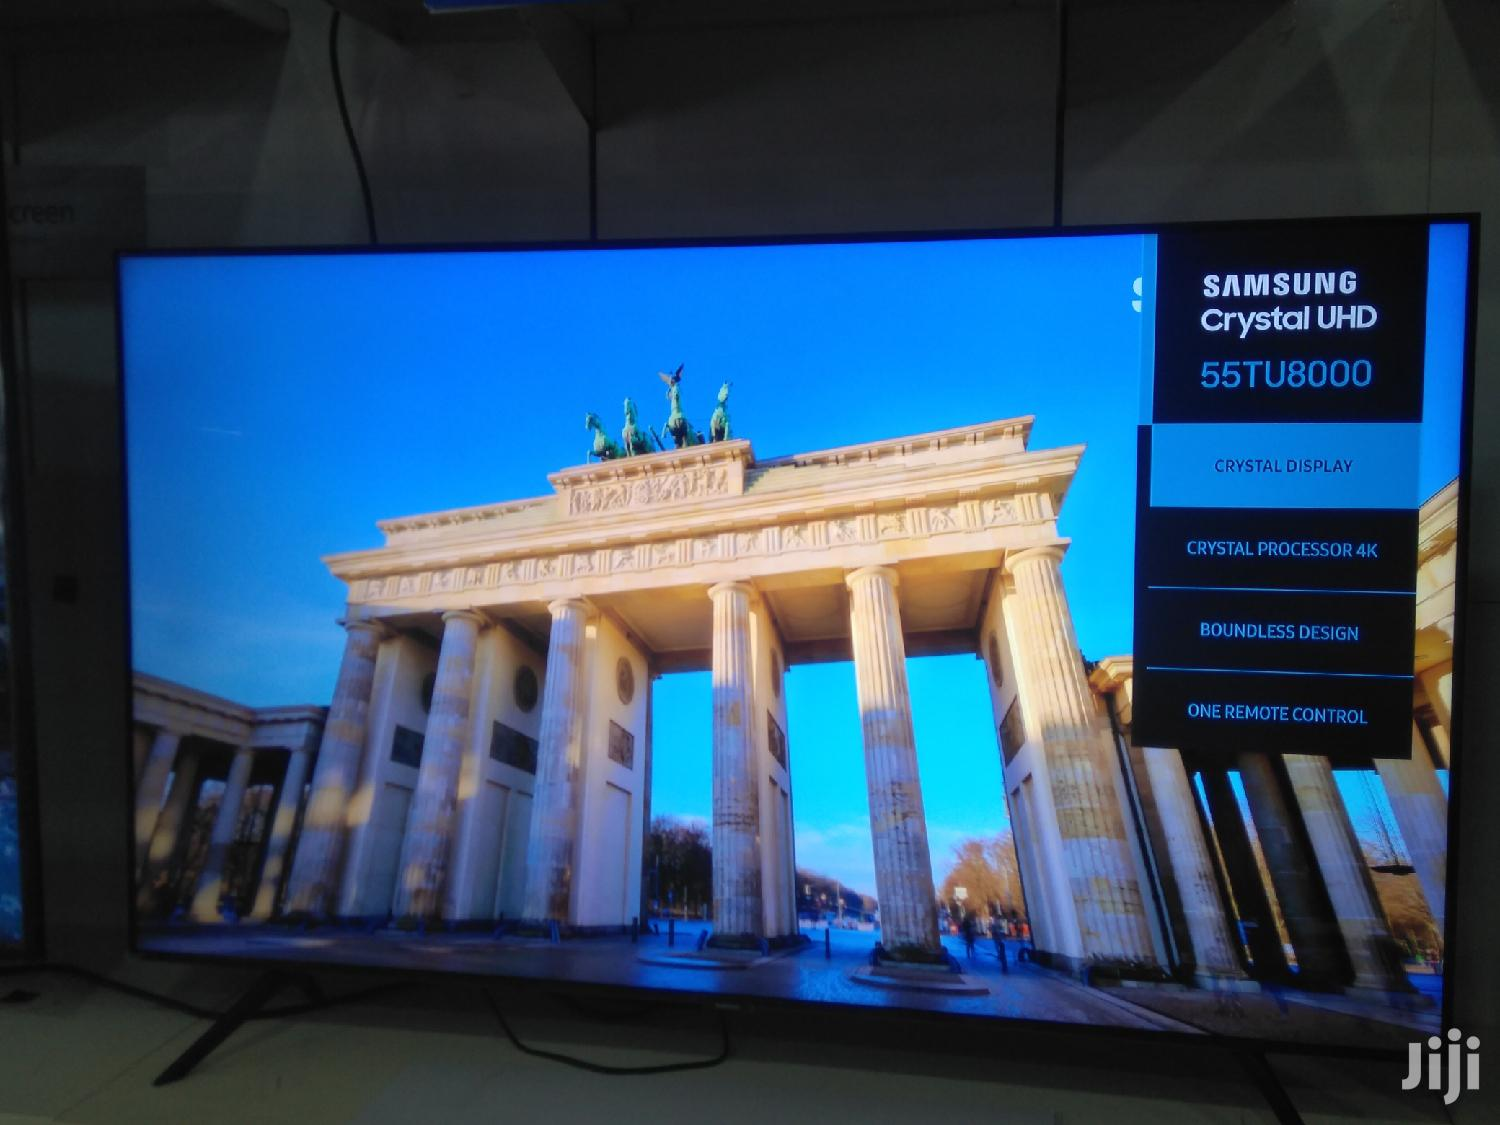 Archive: Samsung 50 Inch 4K Series 8 Tv